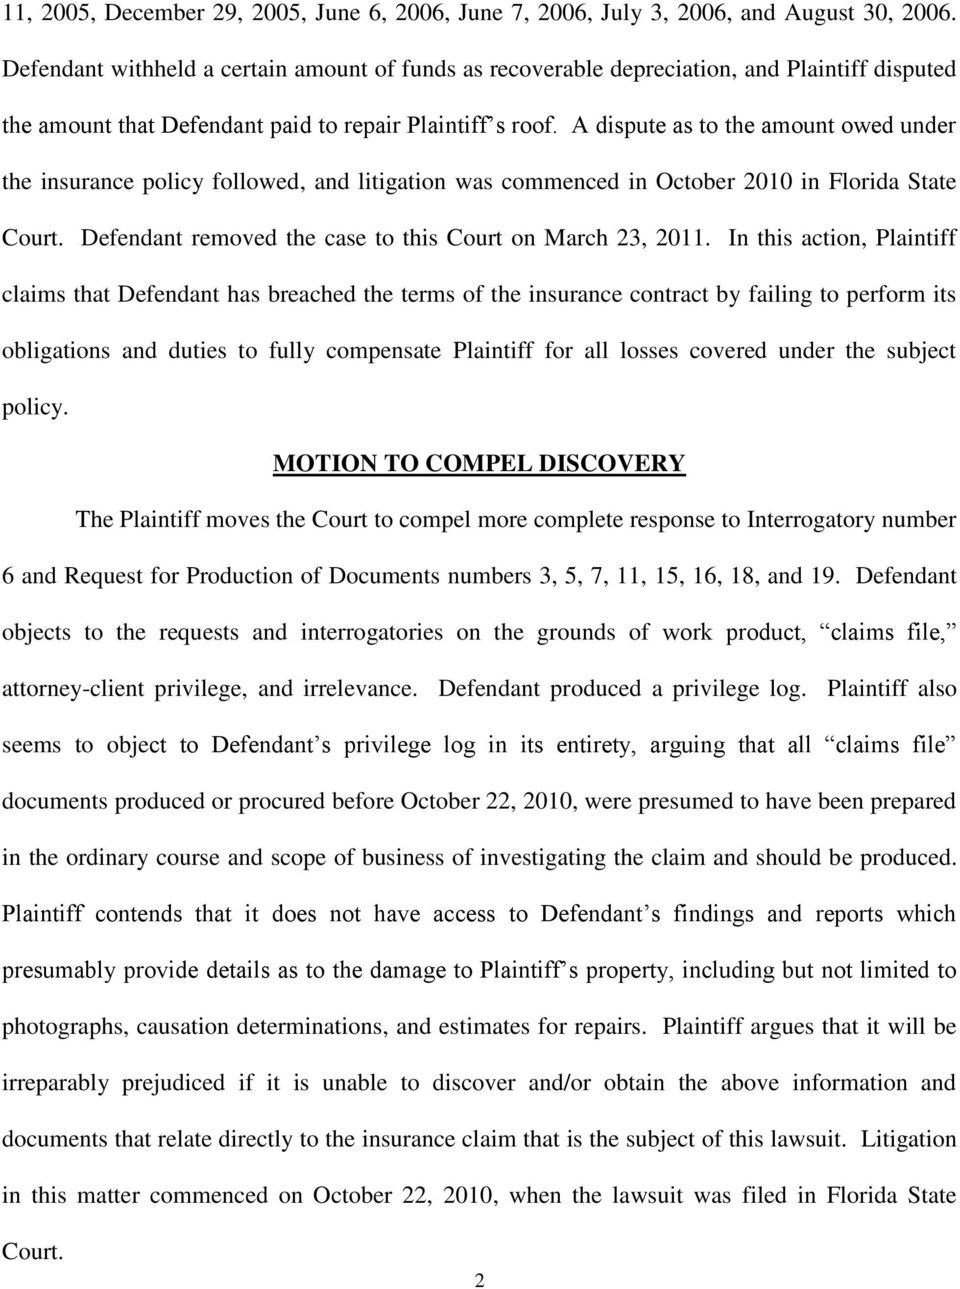 A dispute as to the amount owed under the insurance policy followed, and litigation was commenced in October 2010 in Florida State Court. Defendant removed the case to this Court on March 23, 2011.